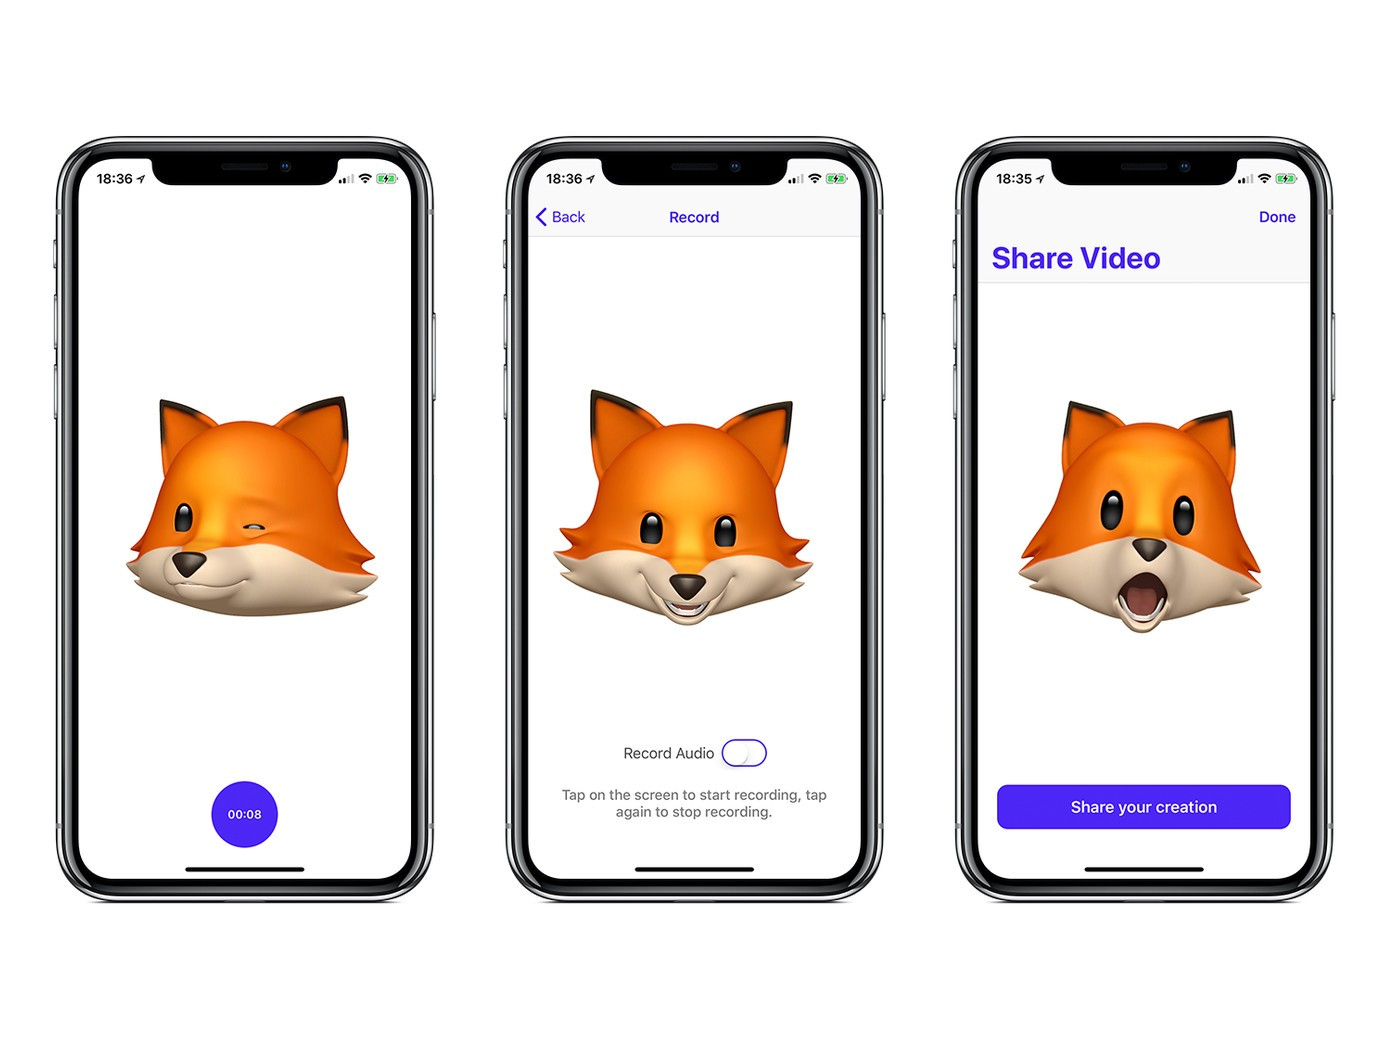 Three iPhone Xs with AnimojiStudio pulled up on the screen. On the first phone, there is an Anomoji of a fox winking. On the second phone, there's an Animoji of a fox making a mischievous face. On the third phone, there is an Animoji of a fox with its mouth open, as if it's singing.